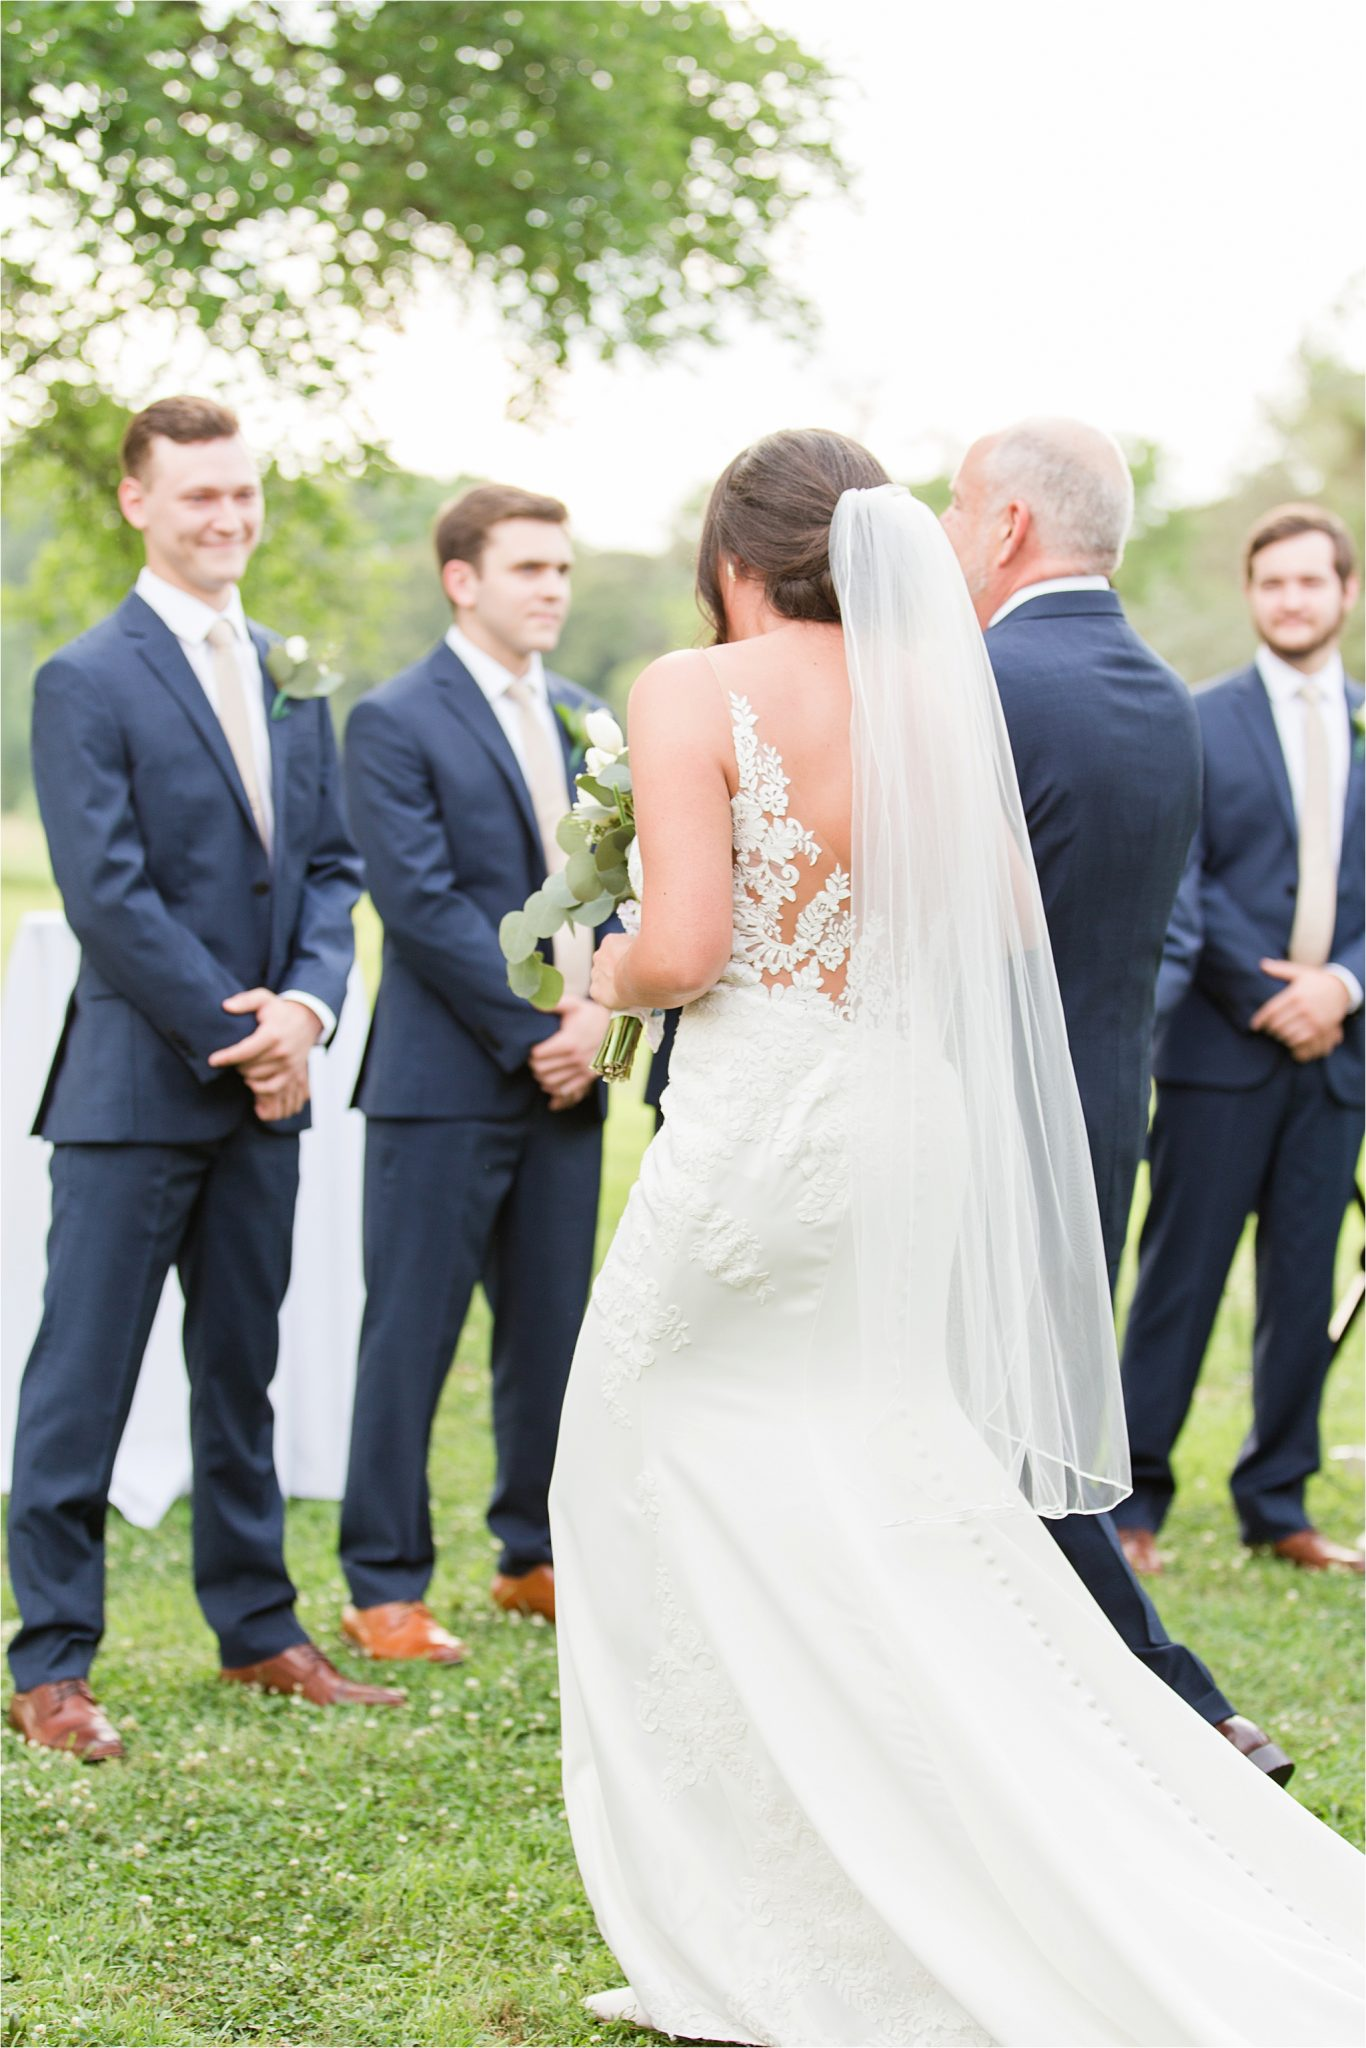 Mississippi wedding photographer | Hedge Farm Wedding | Alabama Wedding Photographer | Groom and Groomsmen